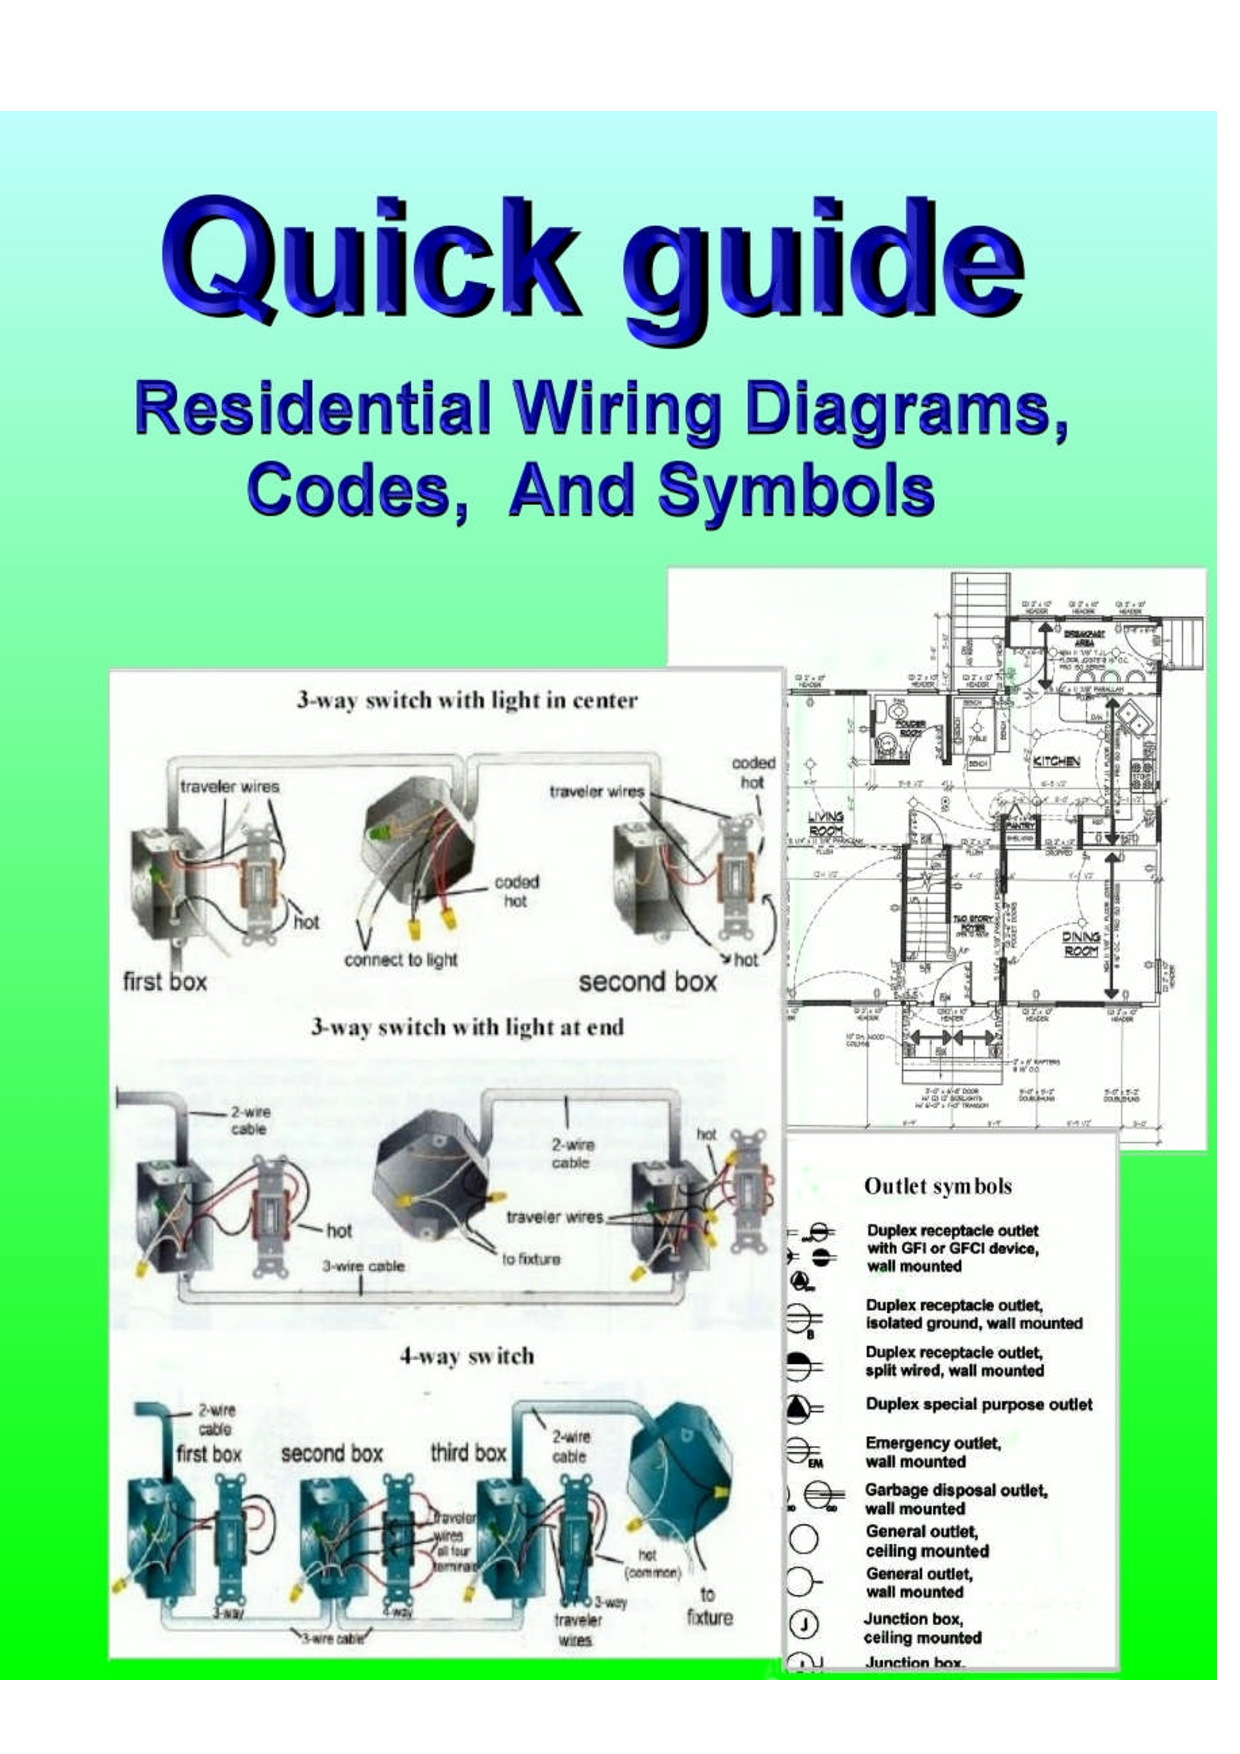 Electrical Wiring Diagram Information : Home electrical wiring diagrams pdf download legal